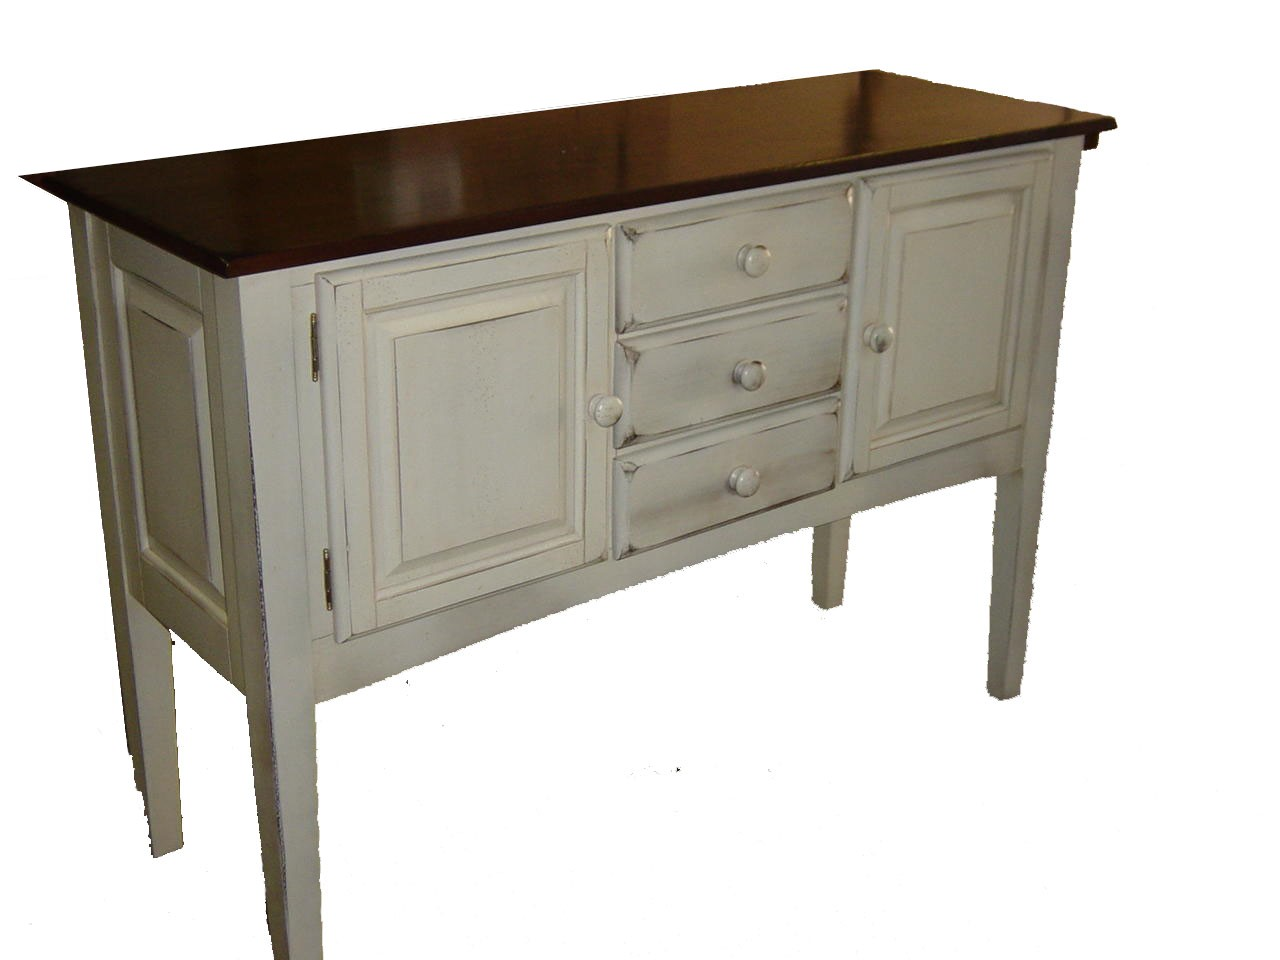 18 X 48 Kitchen Island 36 X 60 Kitchen Island 24 X 60 Kitchen Island 48 X 48 Kitchen Island